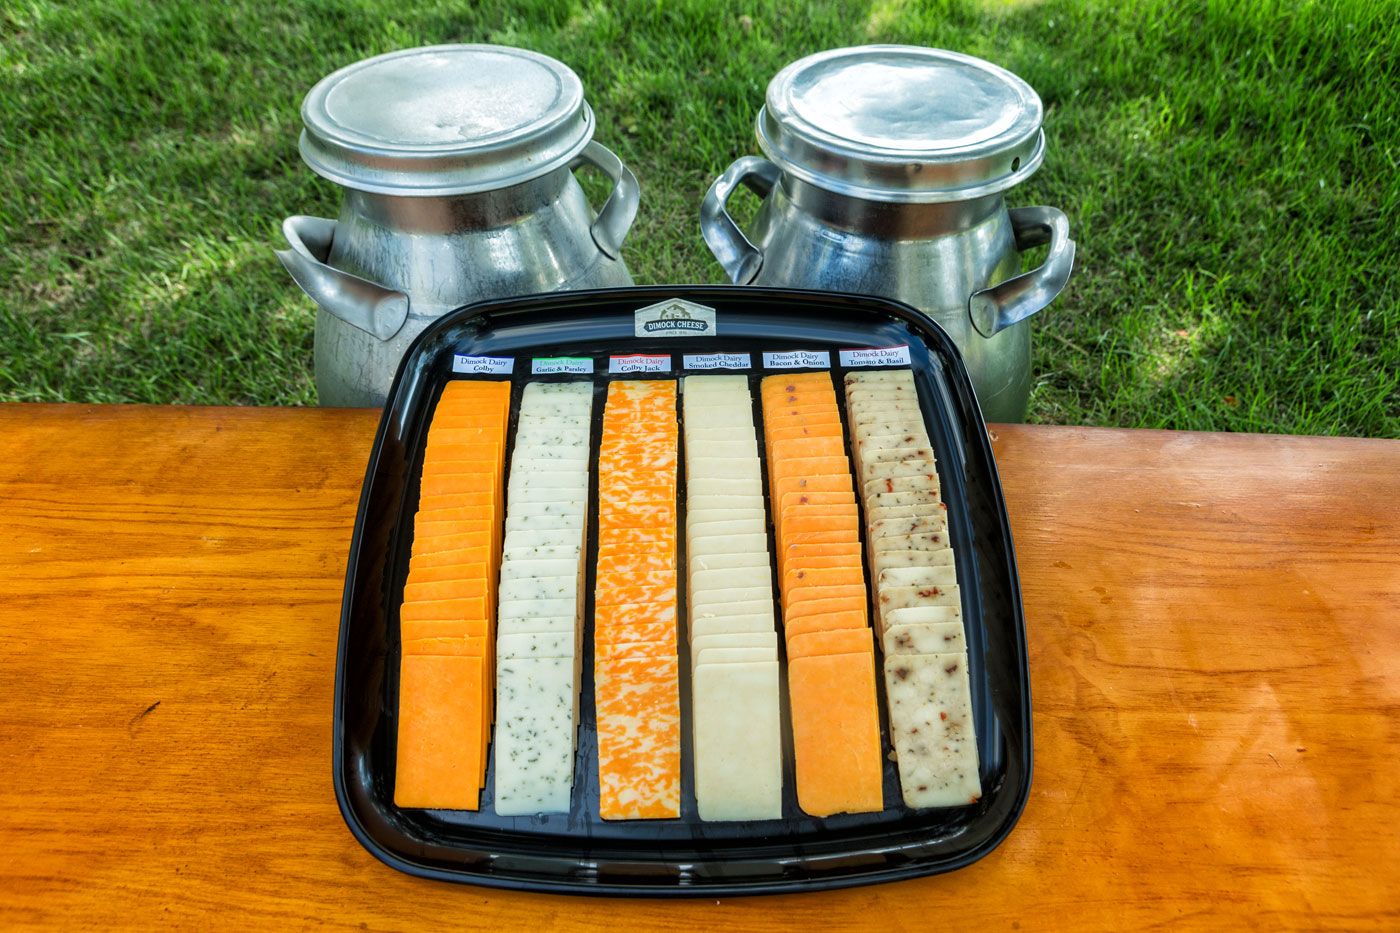 Our Cheese tray comes in a variety of 6 chesses sliced or cubed,